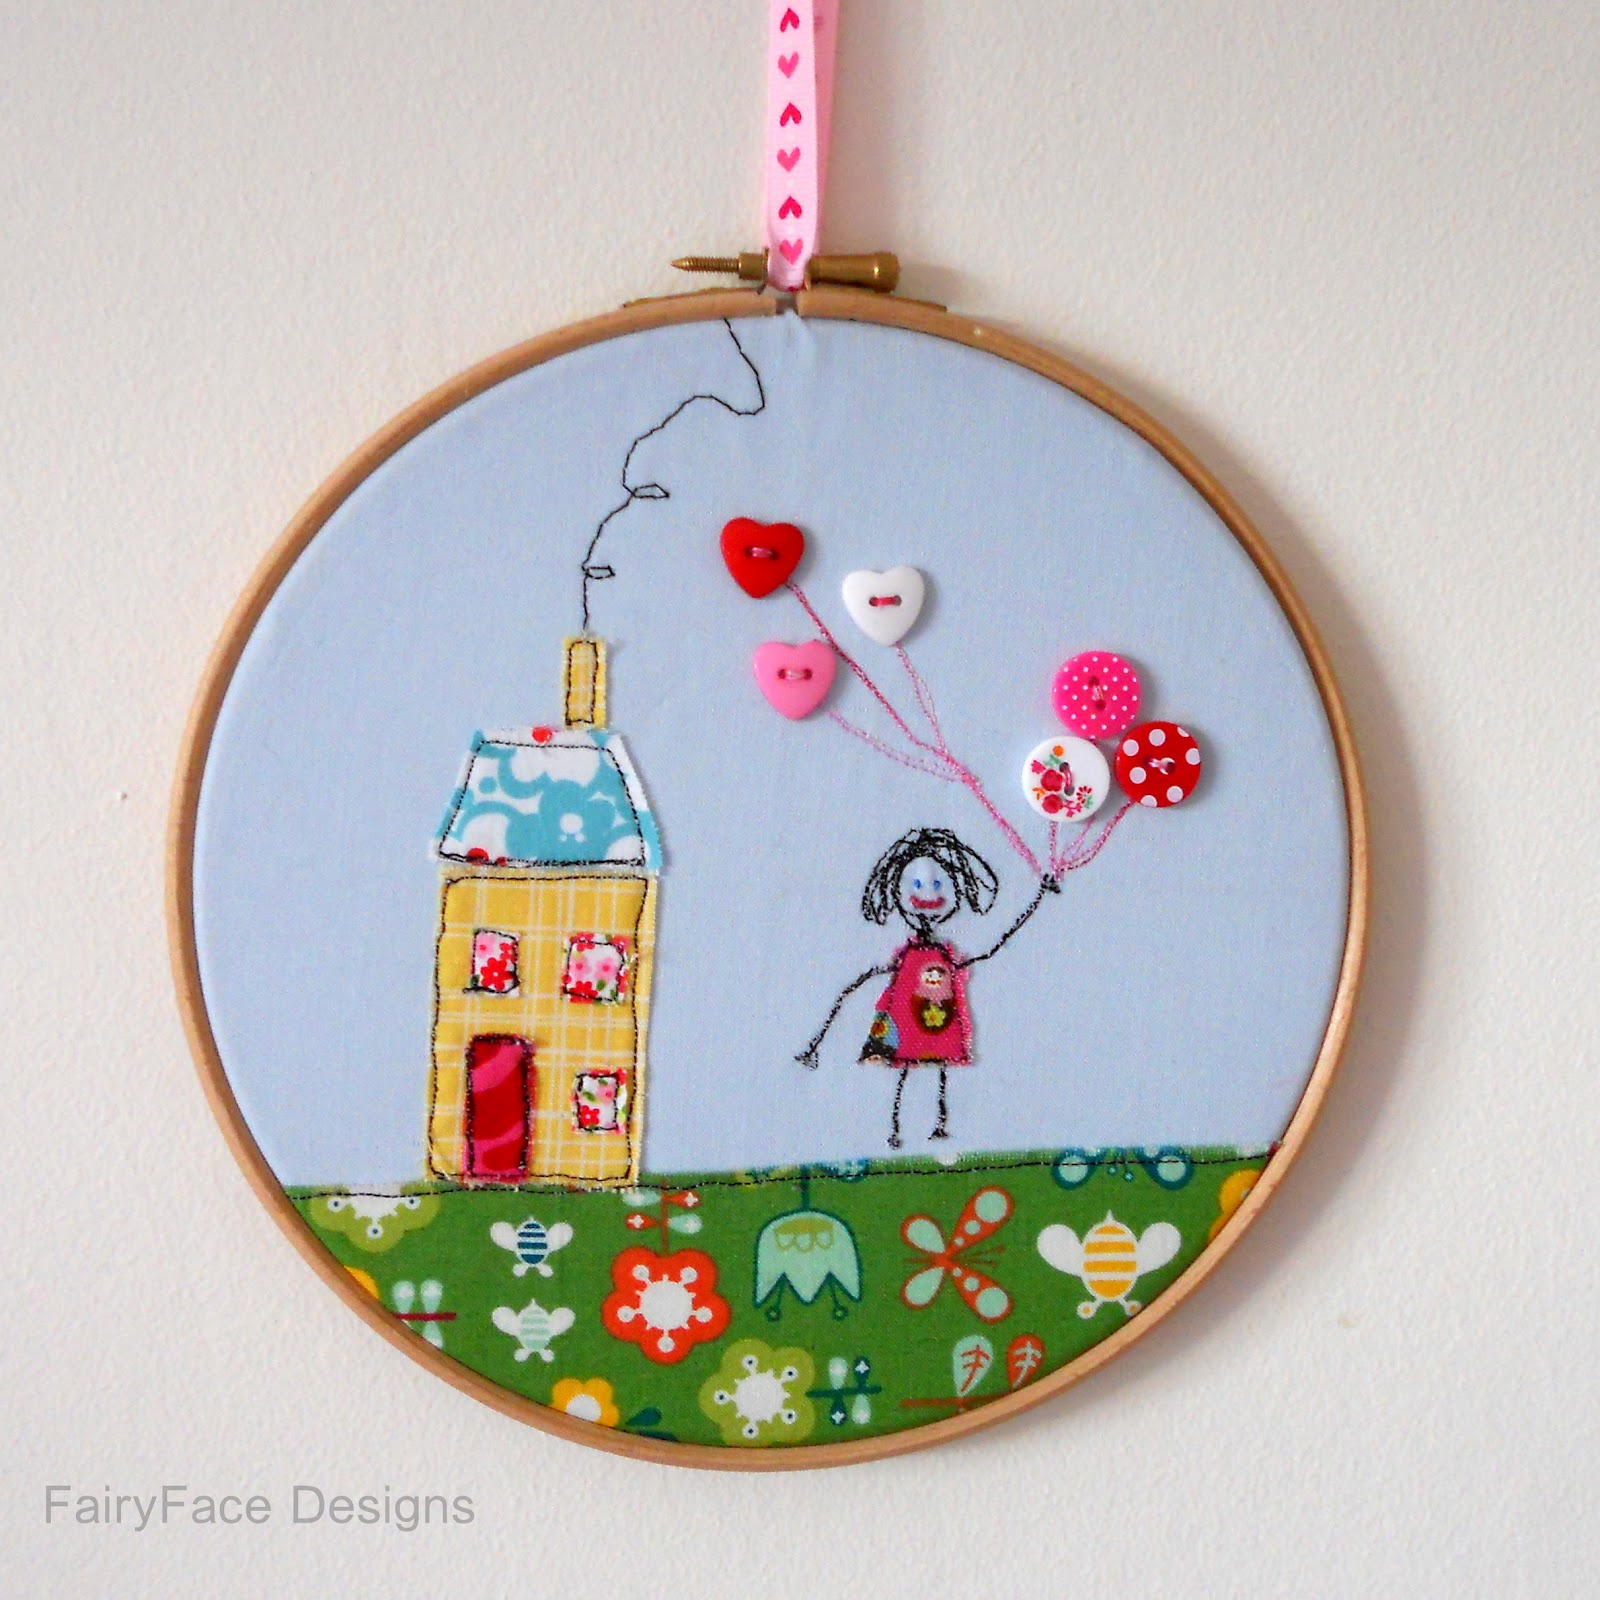 Fairyface designs sew get started freestyle embroidery